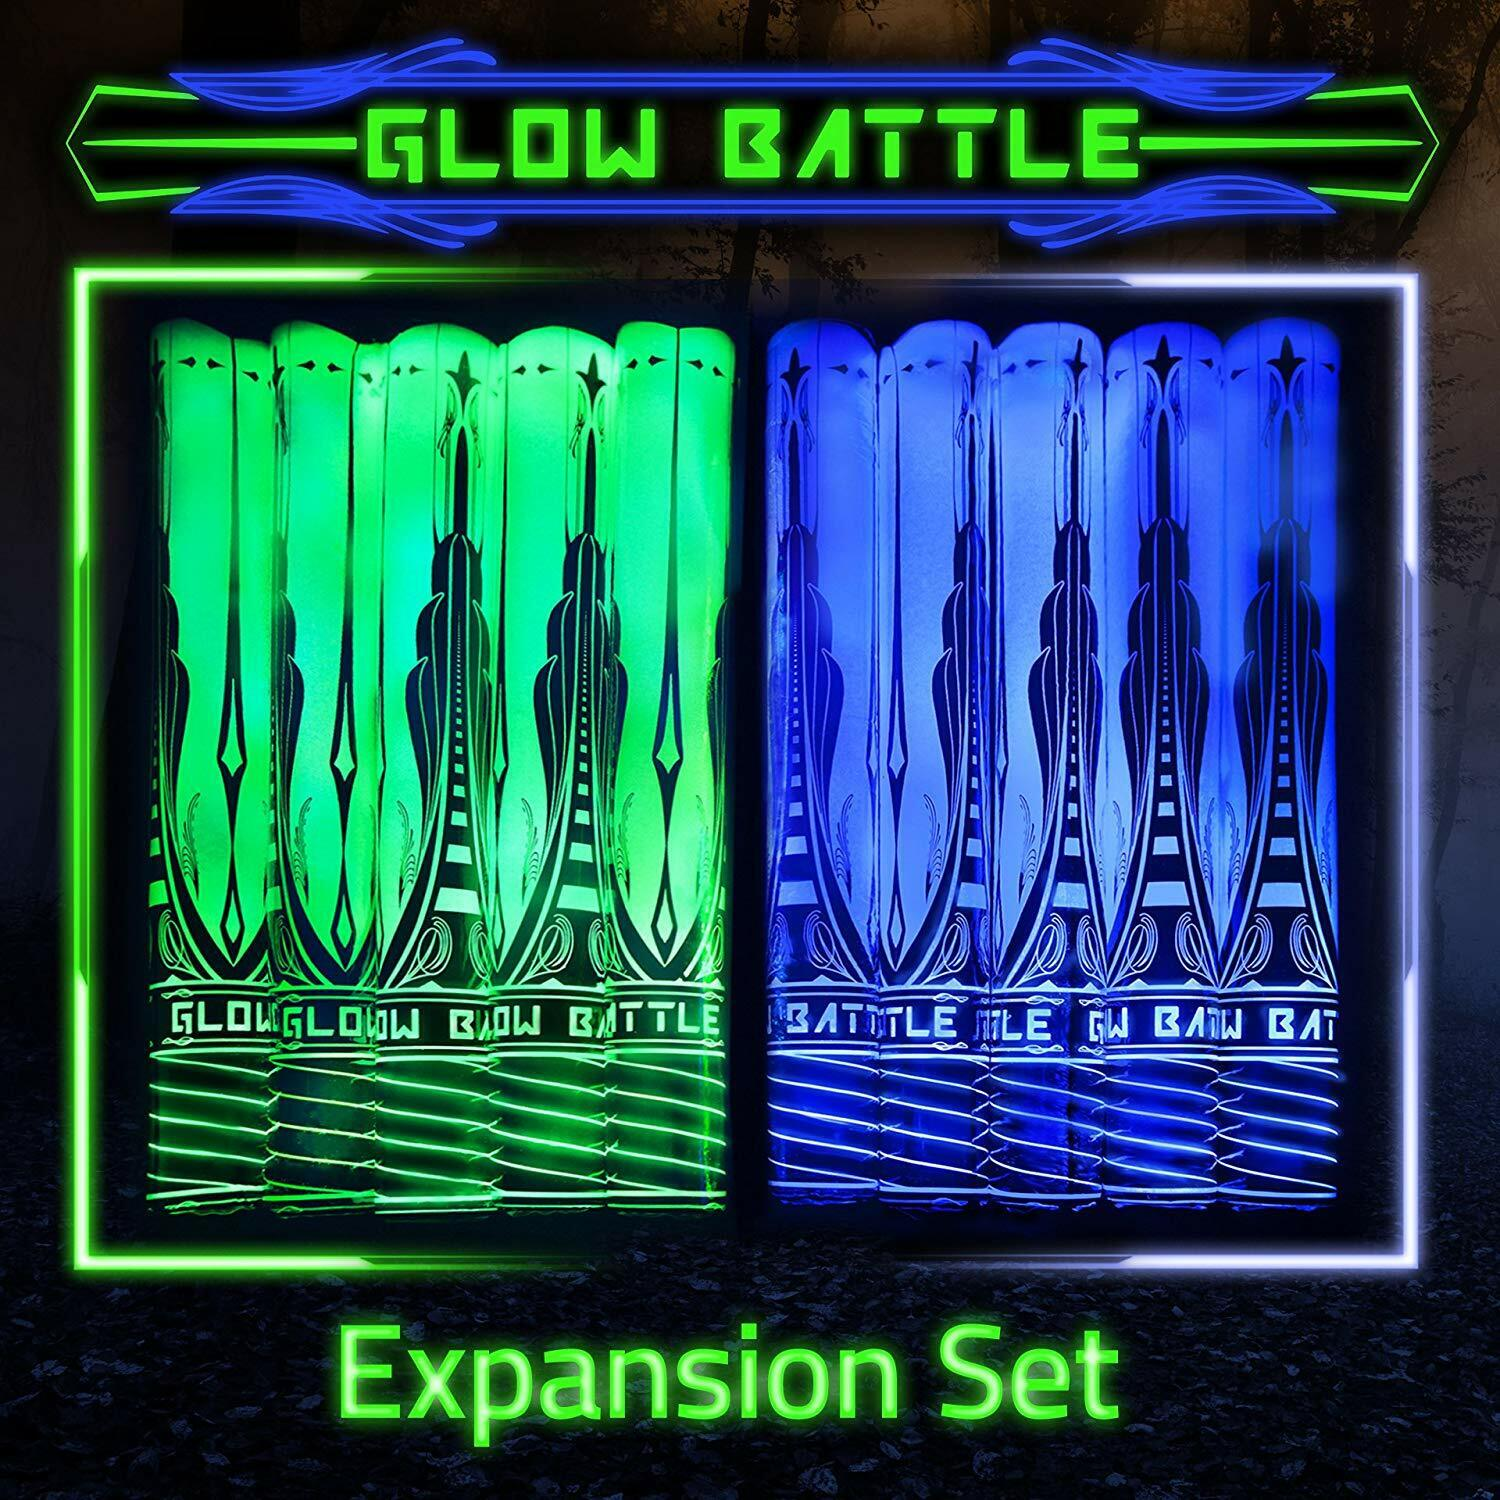 Glow Battle Double Weapon Expansion Set Sword Fighting Game REFURBISHED